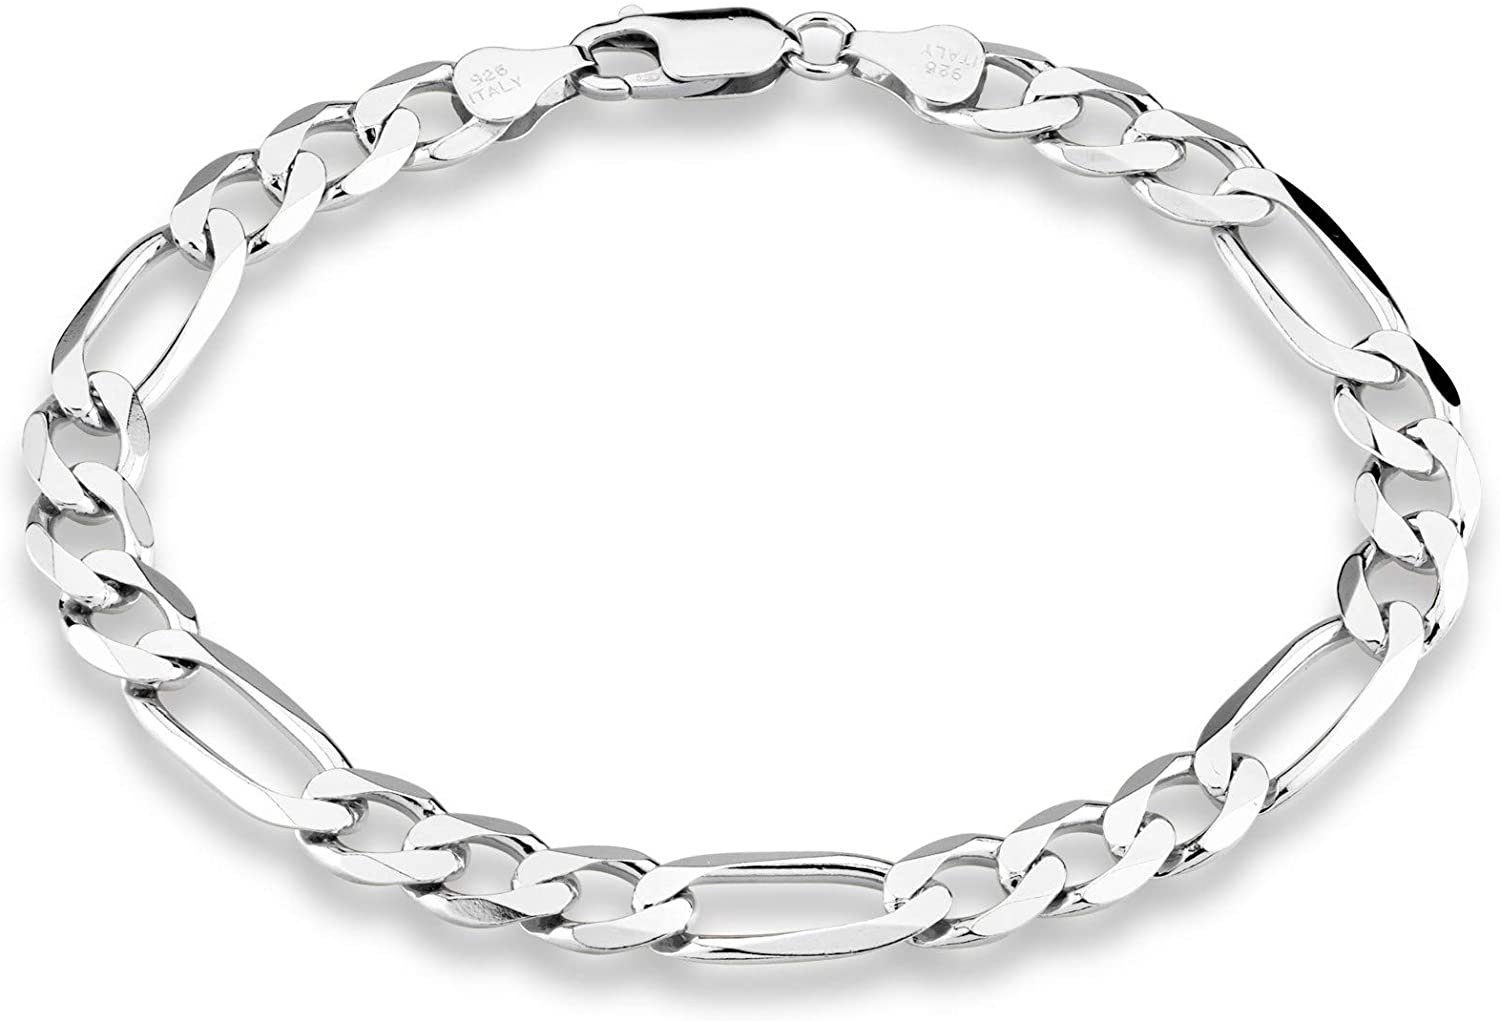 Miabella 925 Sterling Silver Italian 7mm Solid Diamond-Cut Figaro Link Chain Bracelet for Men, 7, 7.5, 8, 8.5, 9 inch